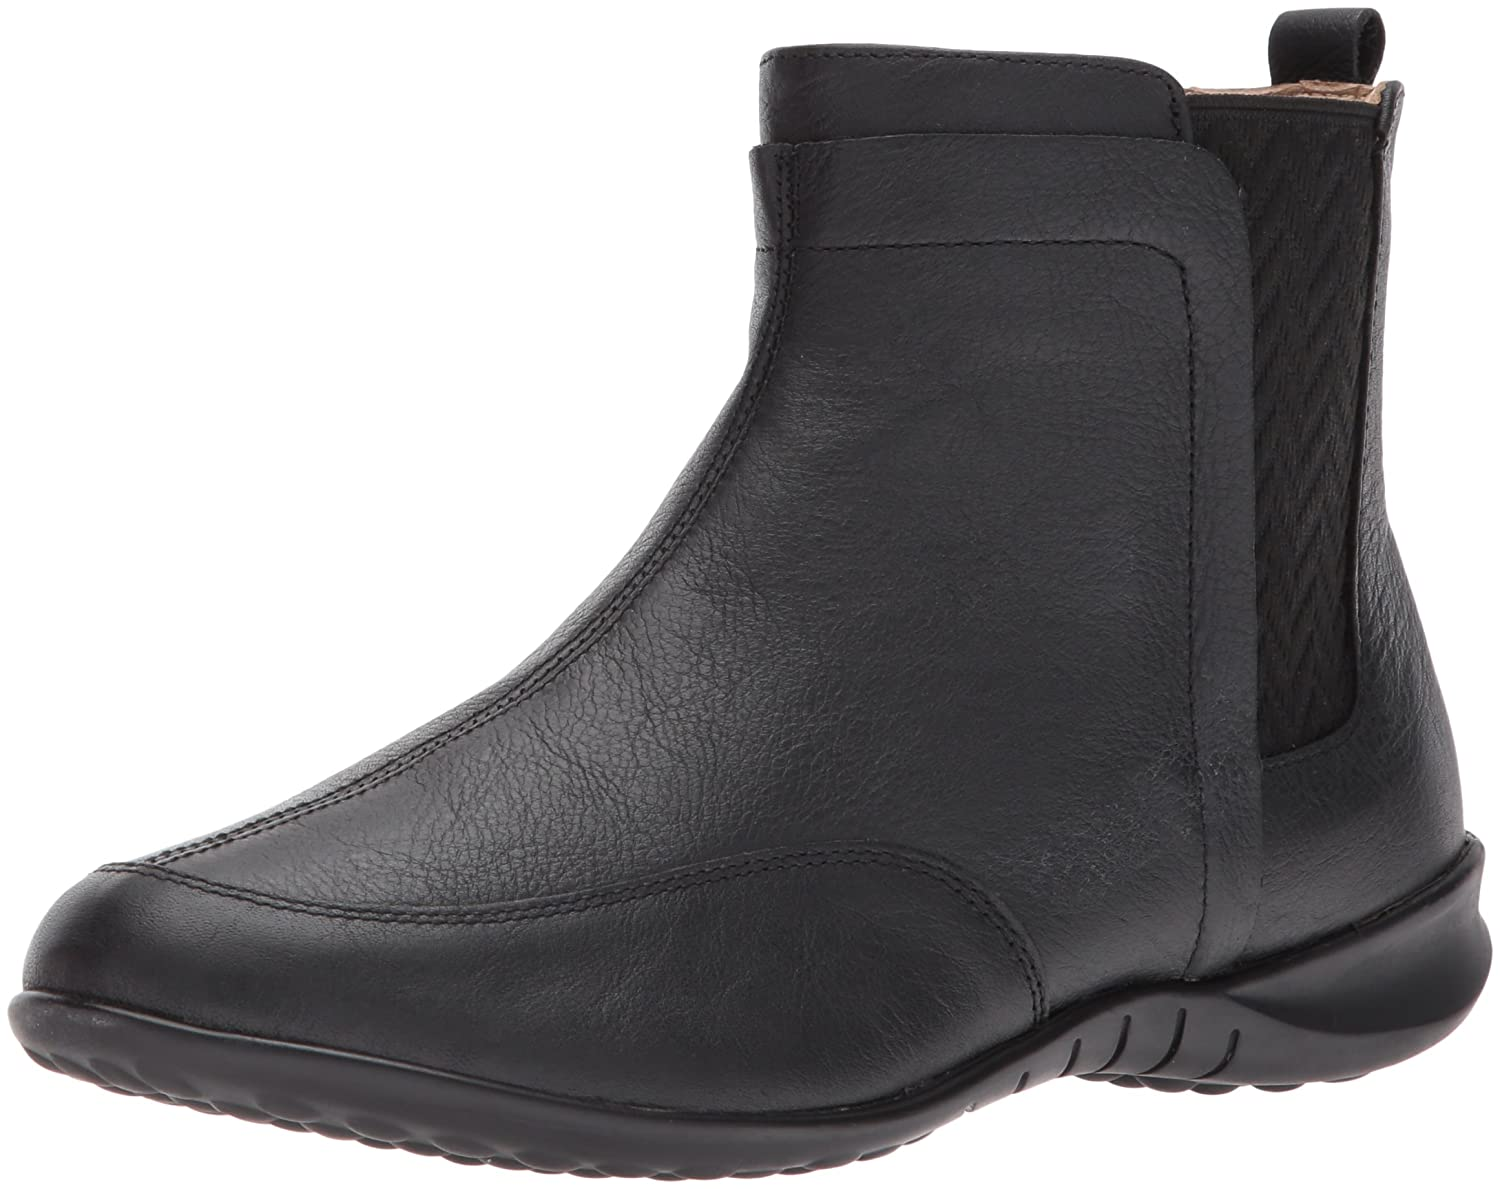 Hush Puppies Women's Lindsi Bria Chelsea Boot B01MSD0VGK 8 W US|Black Wp